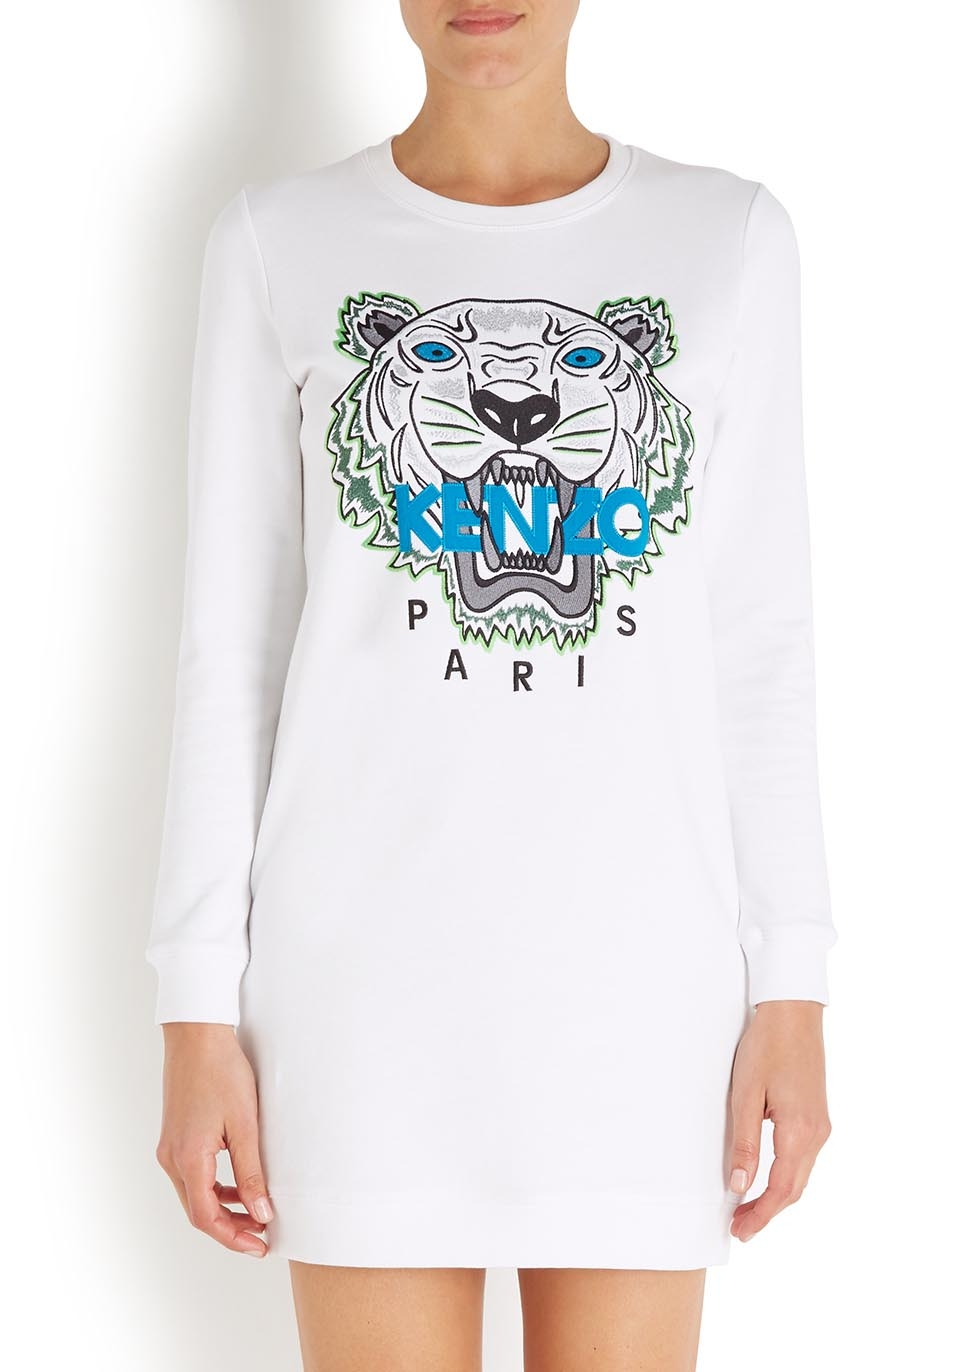 Jersey White Dress Jumper Kenzo Embroidered Lyst O0wPn8k